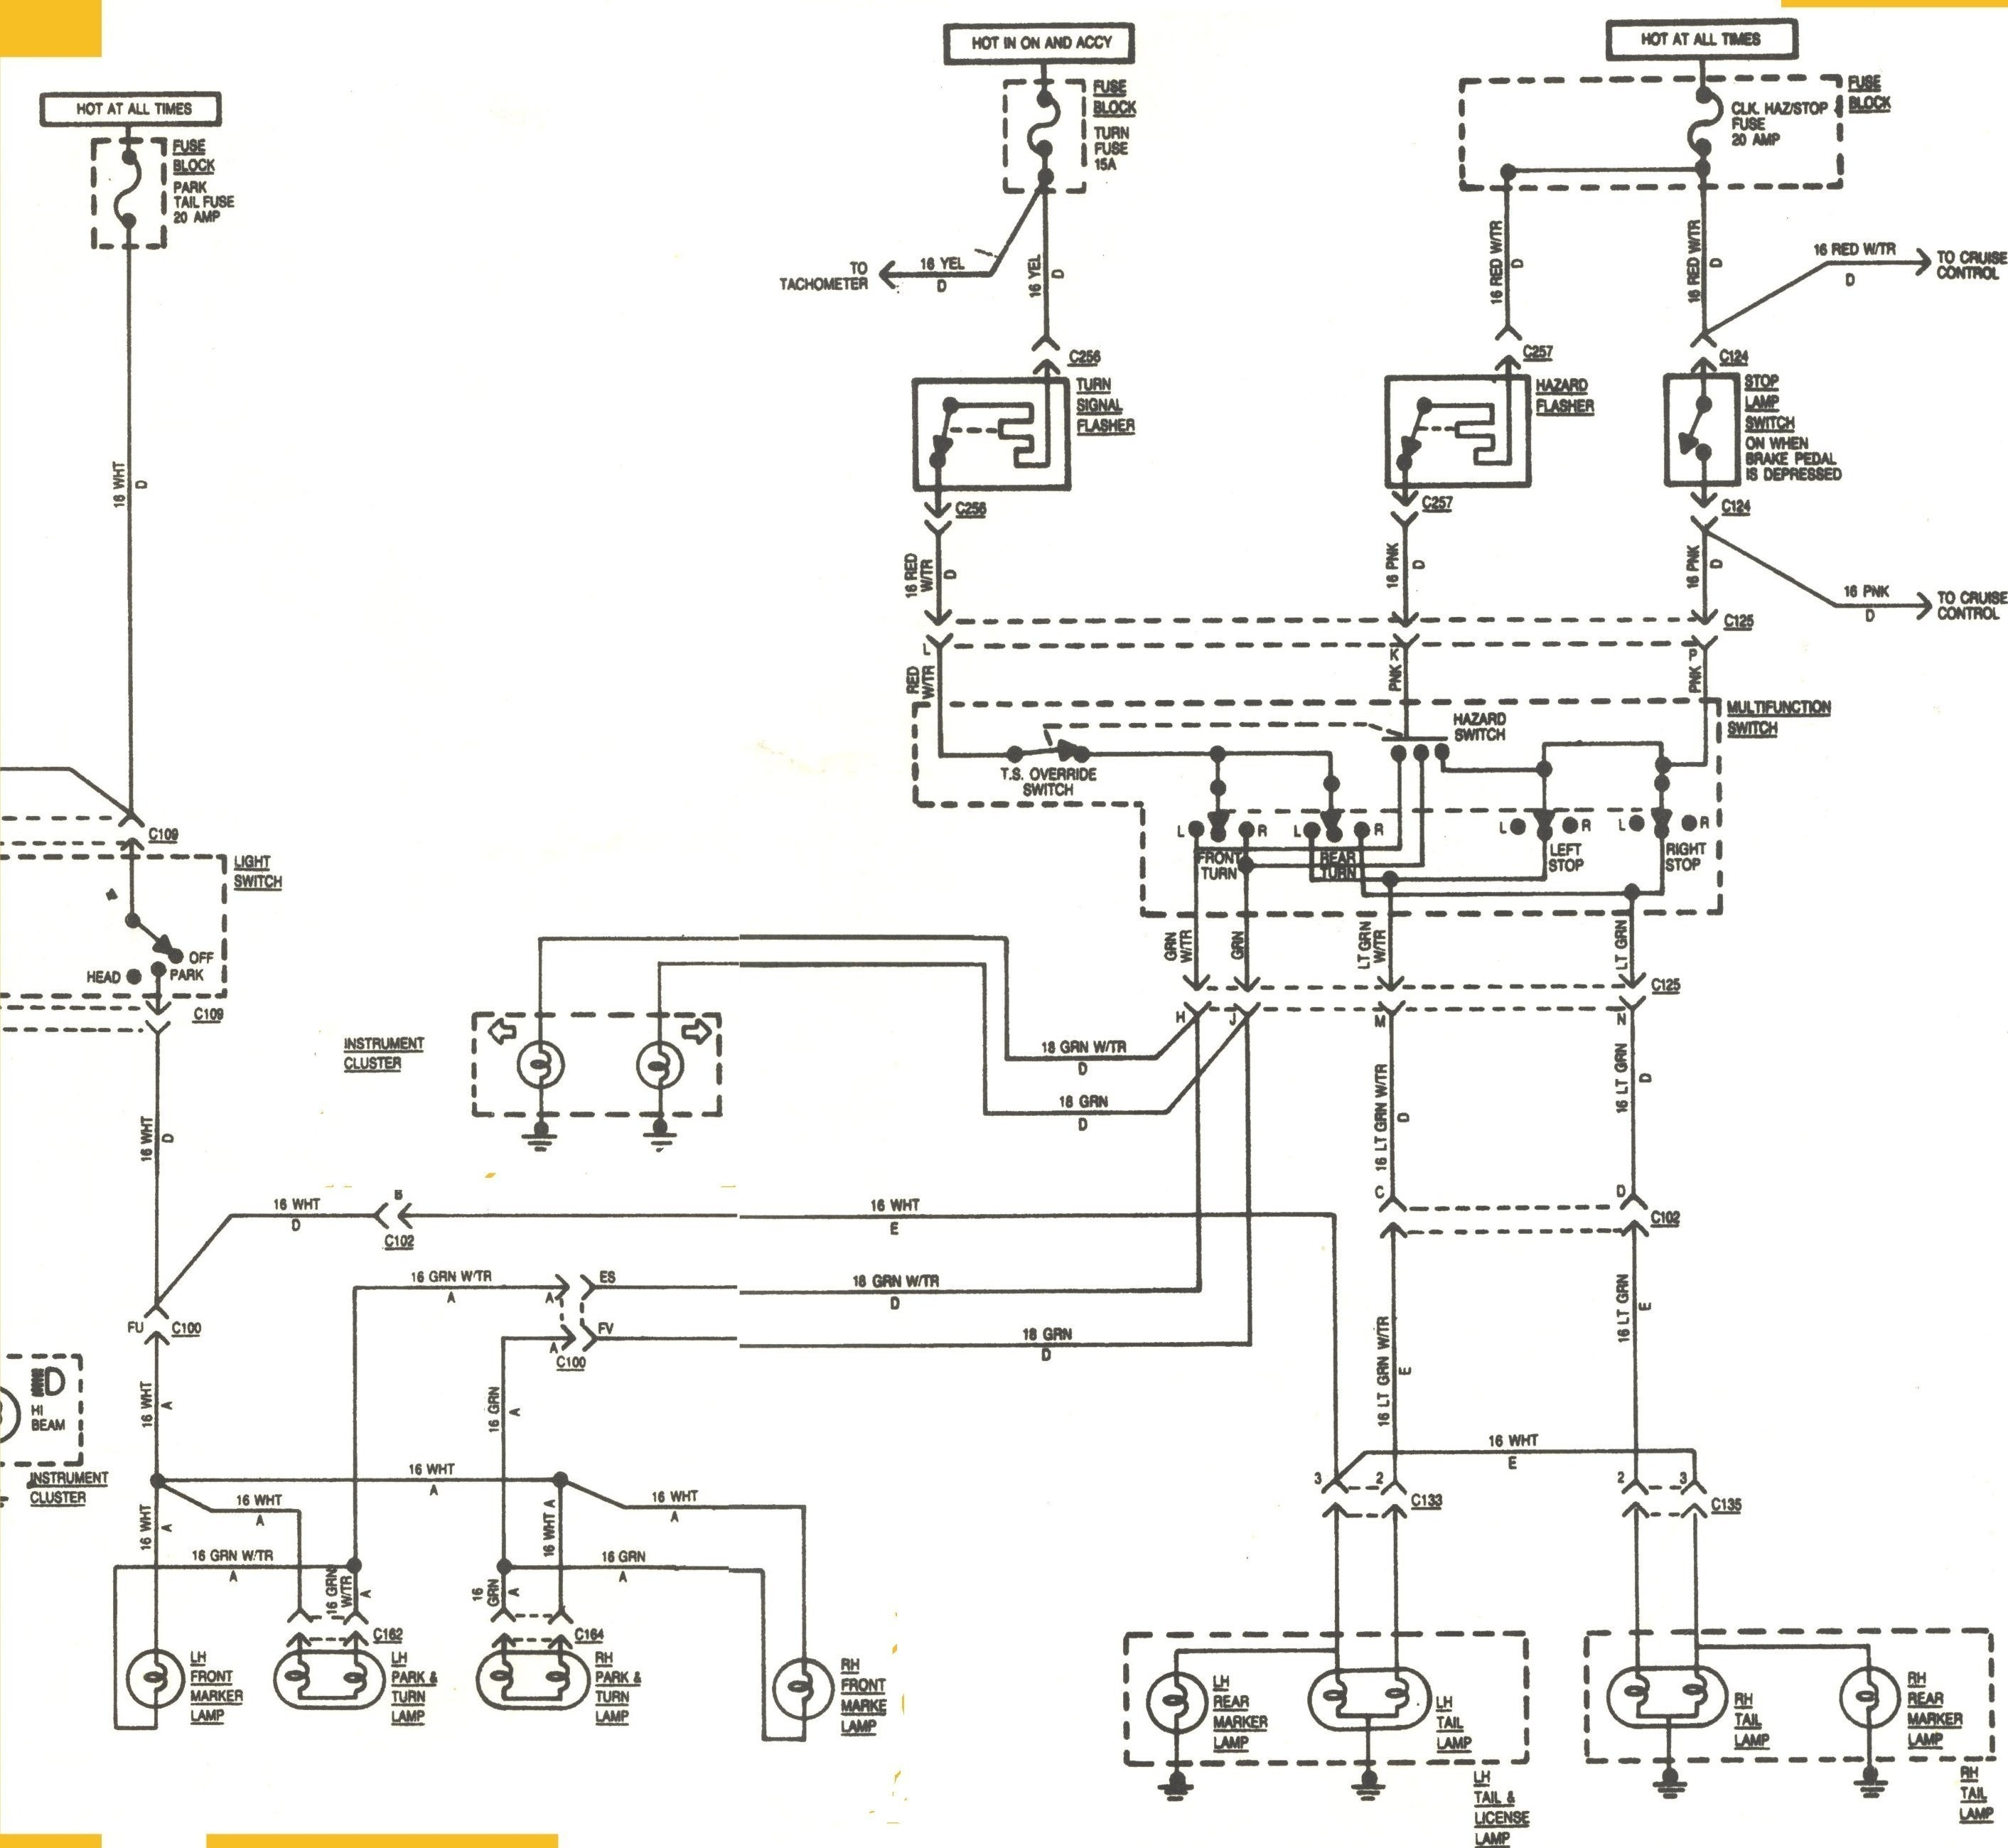 Turn signal schematic diagram my wiring diagram signal flasher diagram turn related post asfbconference2016 Images